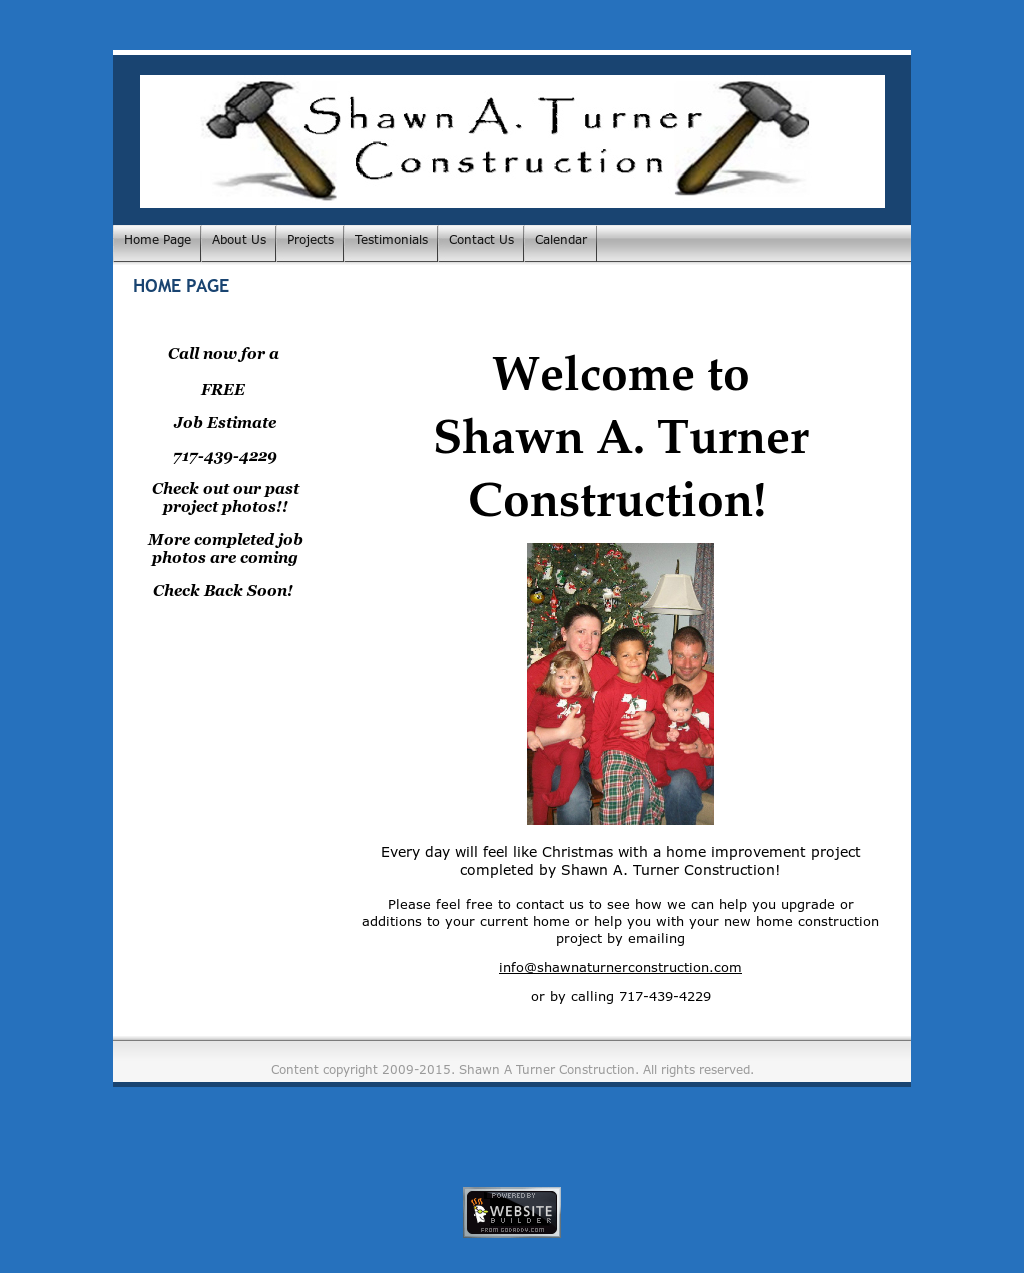 Shawn A Turner Construction Competitors, Revenue and